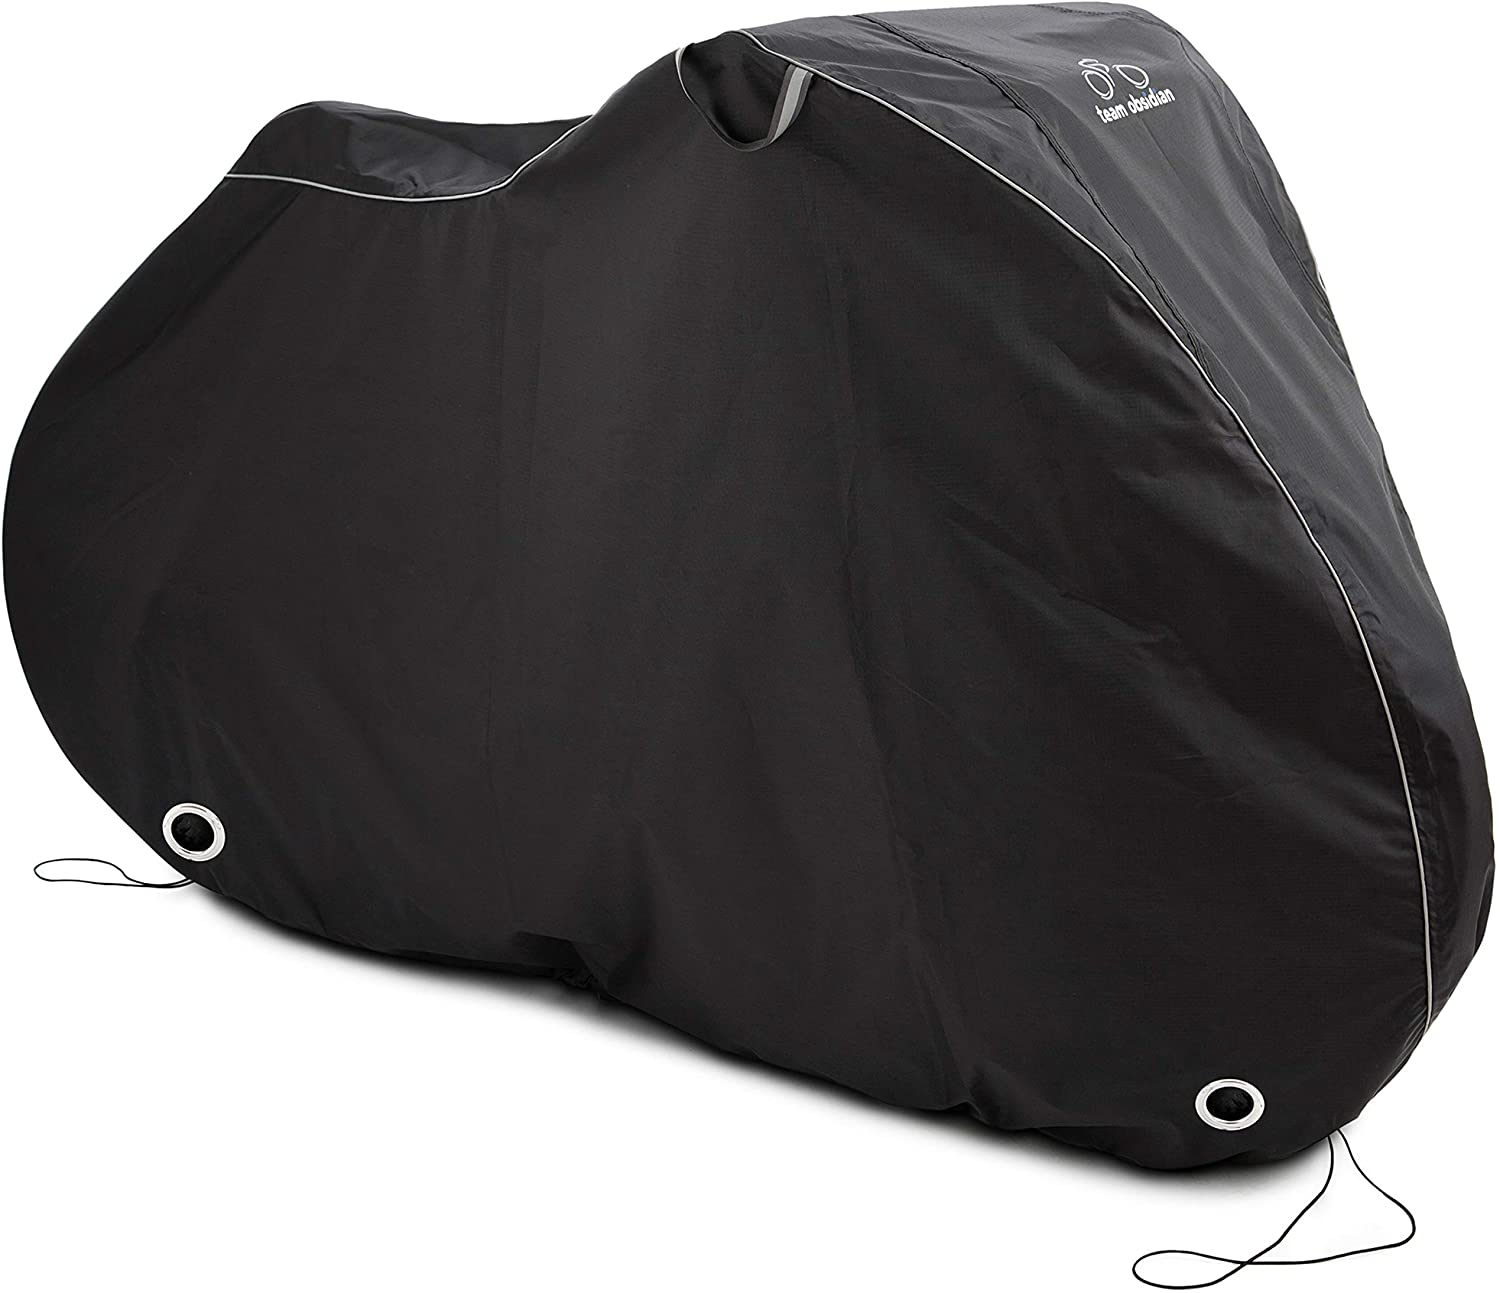 teamobsidian stationary bike cover black color